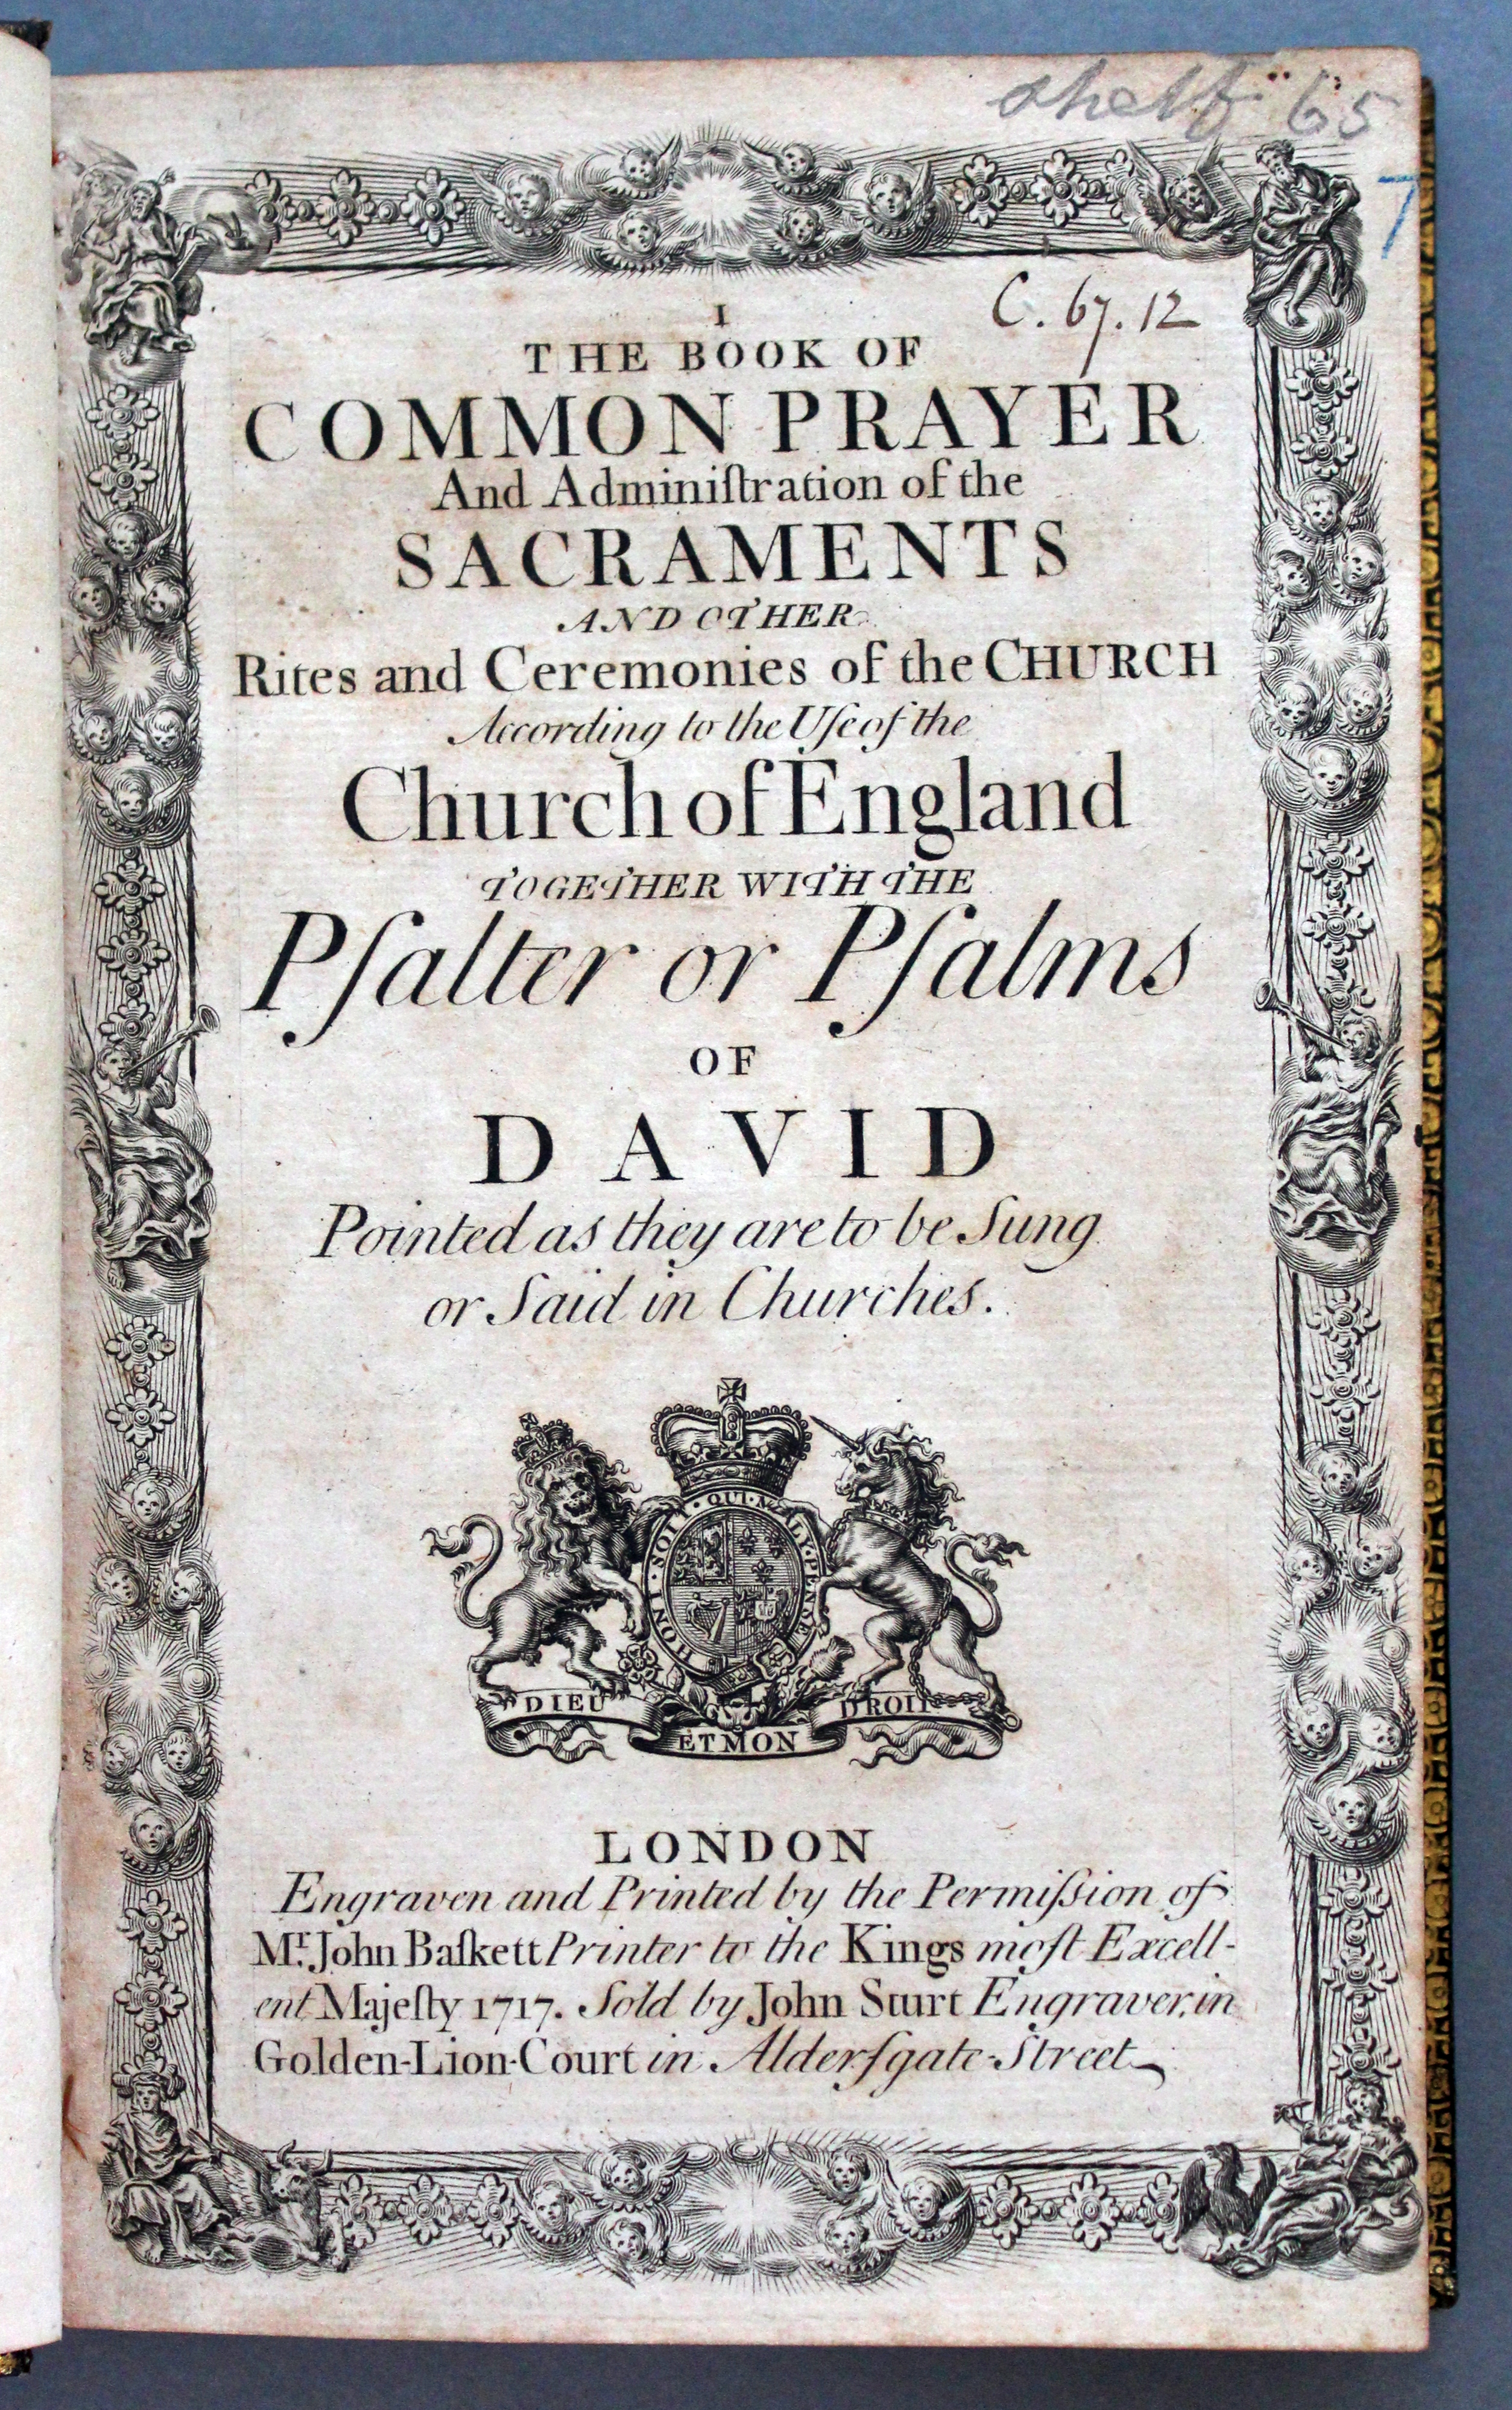 Thackeray.C.67.12_title page